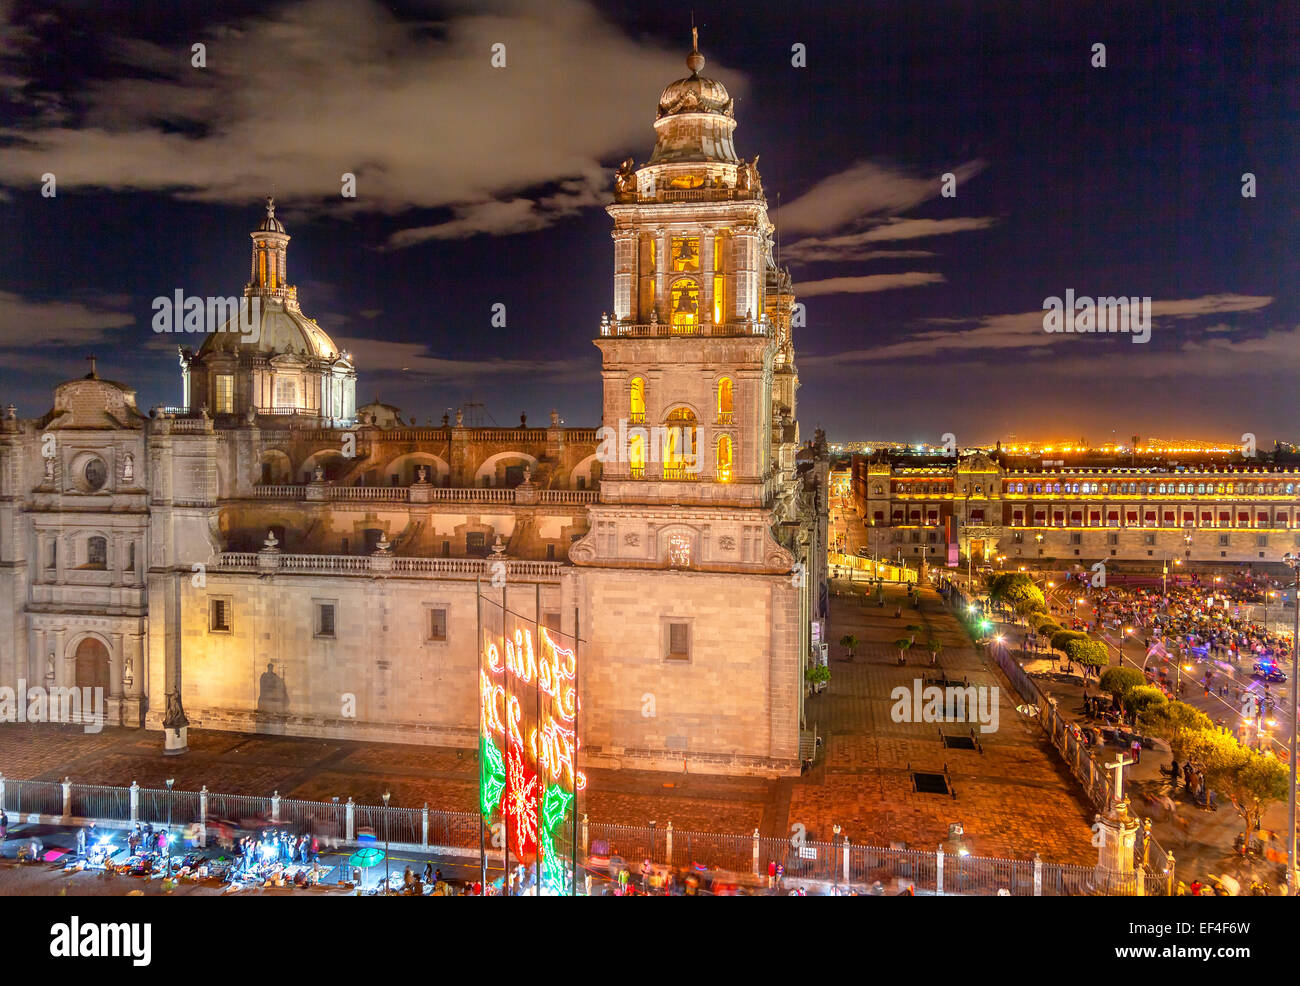 Metropolitan Cathedral and President's Palace in Zocalo, Center of Mexico City, at Night - Stock Image